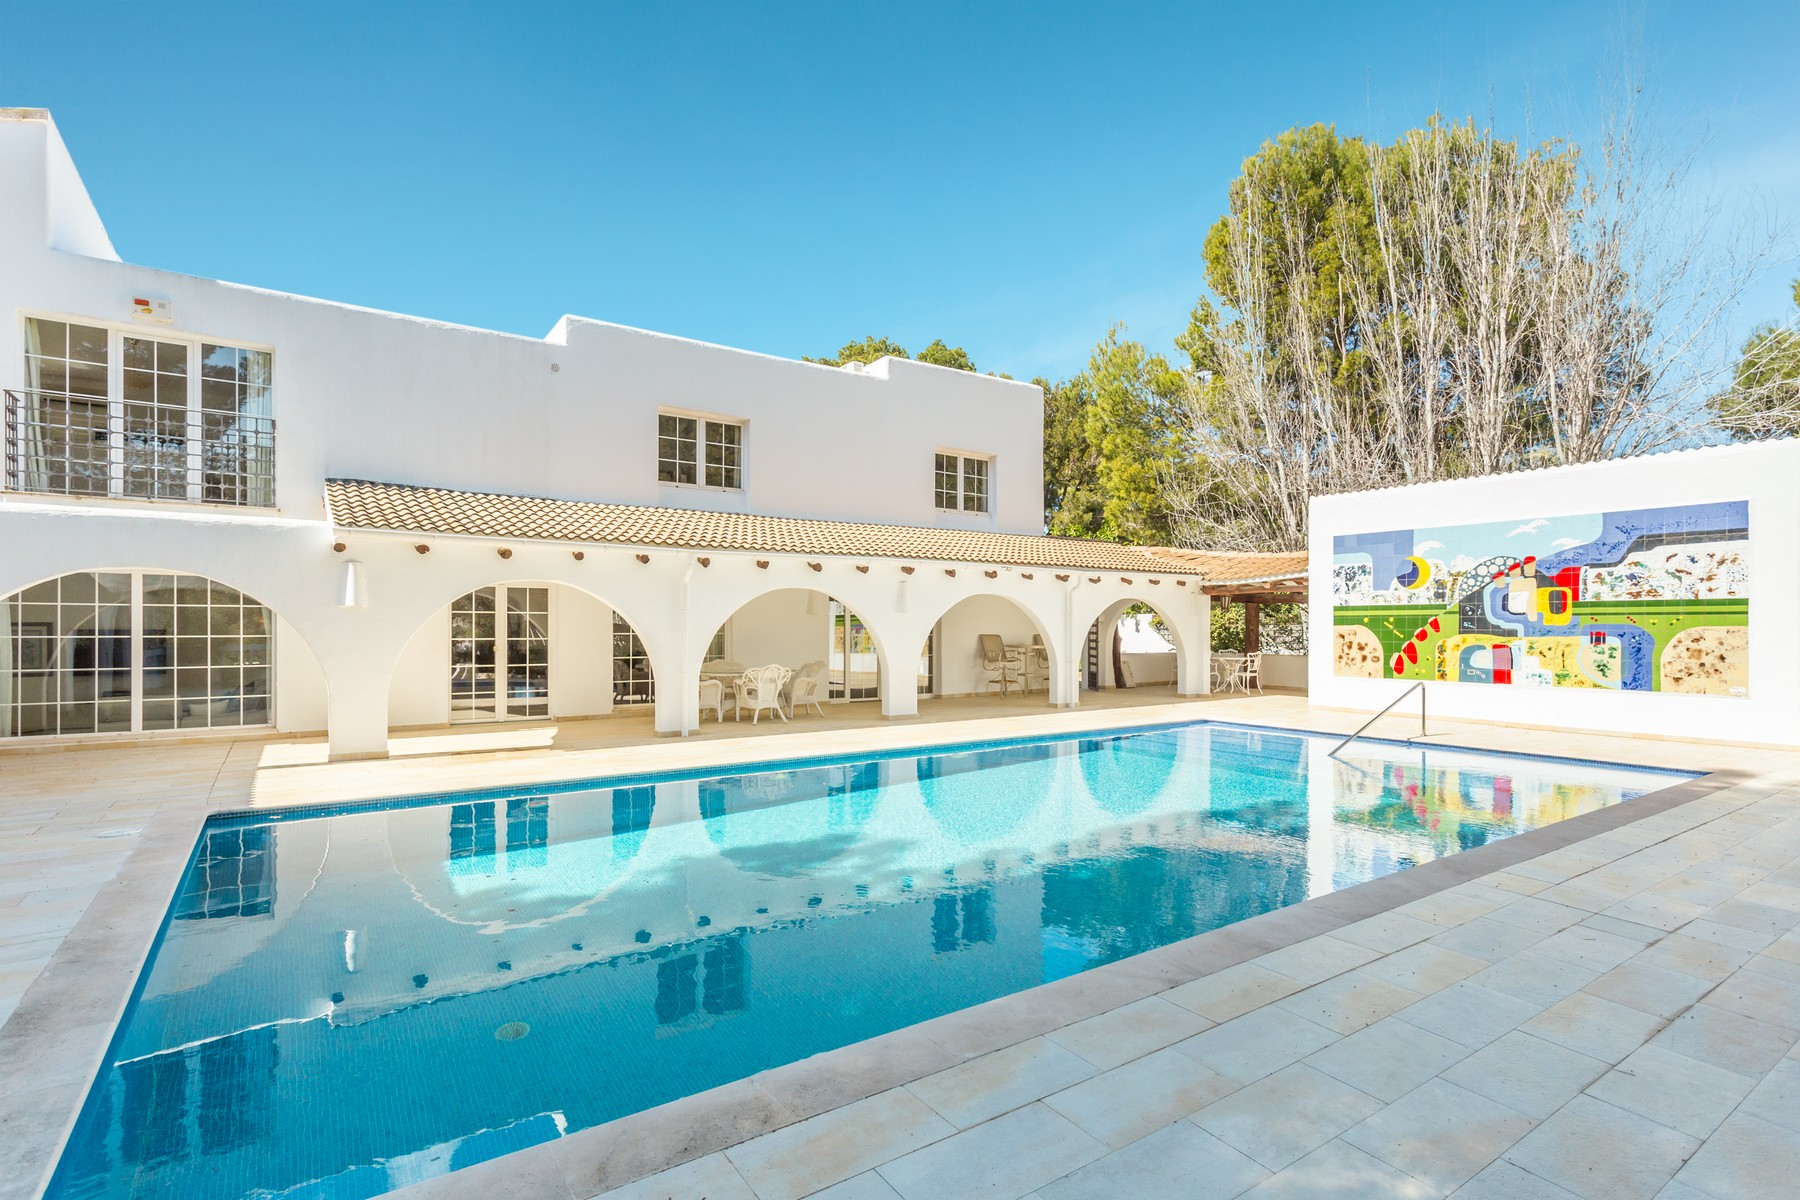 Single Family Home for Sale at Stunning Ibicencan style villa Sol de Mallorca Sol De Mallorca, Mallorca, 07181 Spain